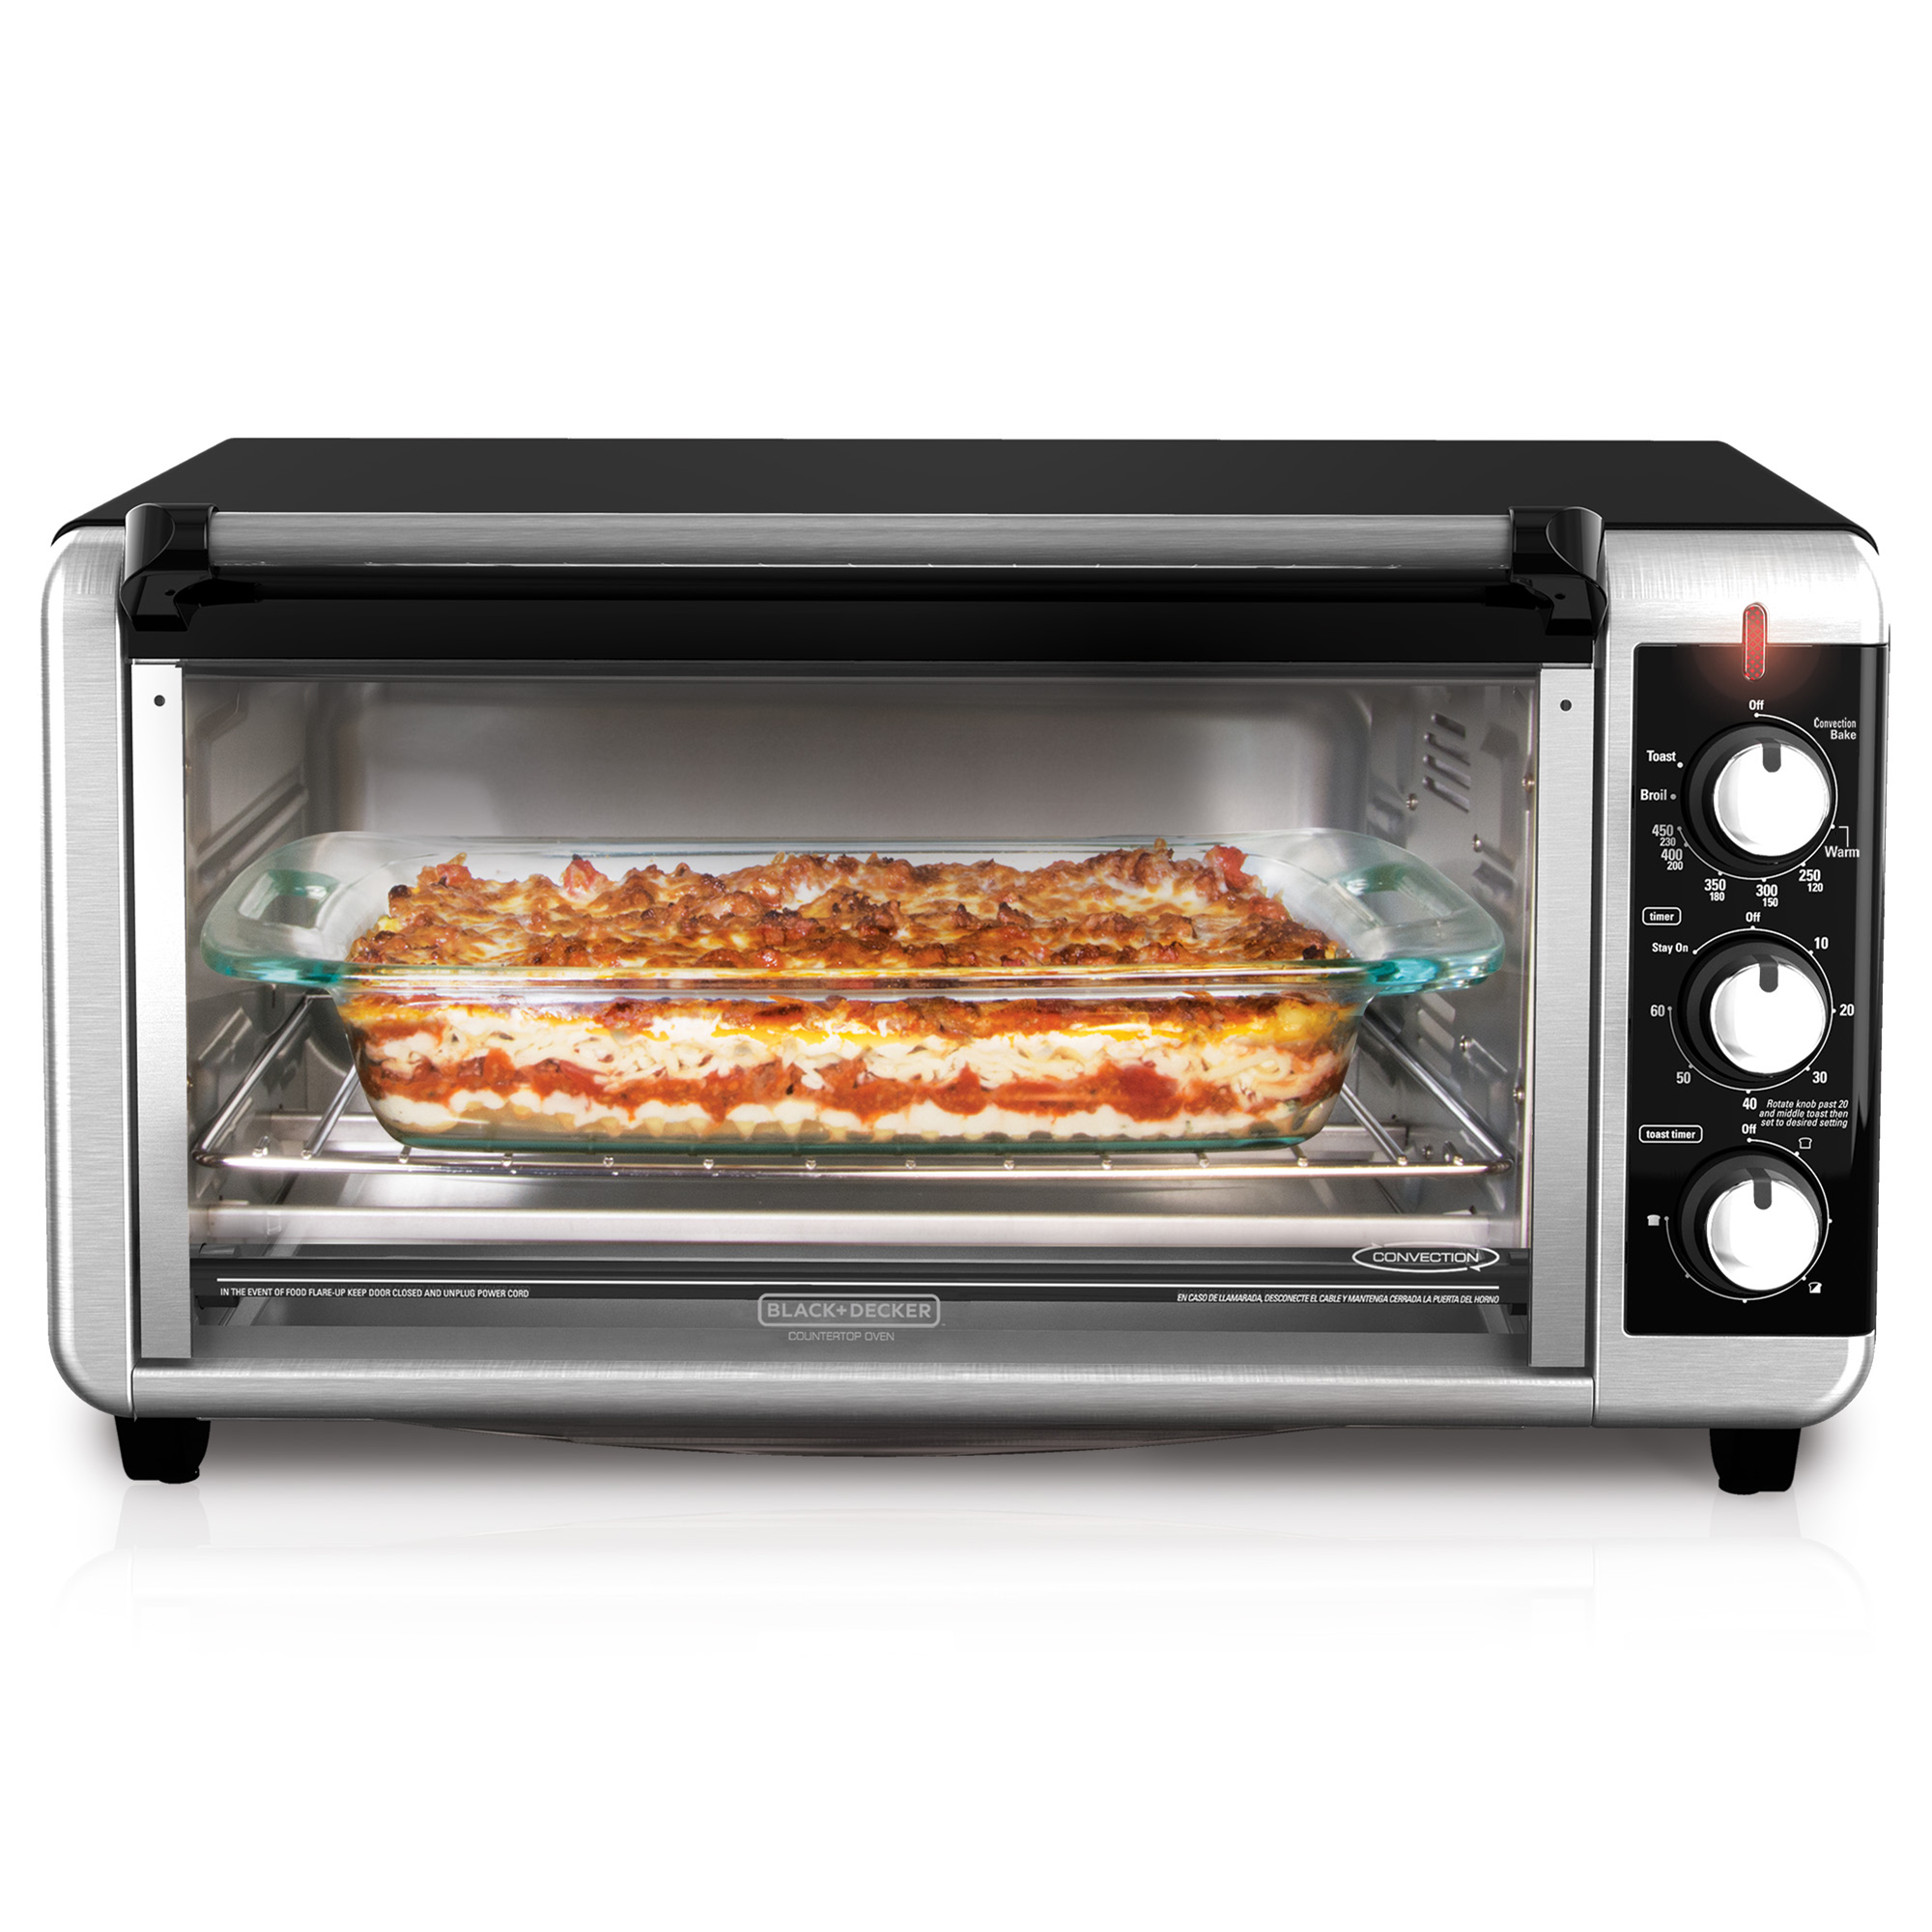 TO3250XSBprd1_HR.ashx?mh=285 black decker extra wide 8 slice toaster oven to3250xsb black  at reclaimingppi.co